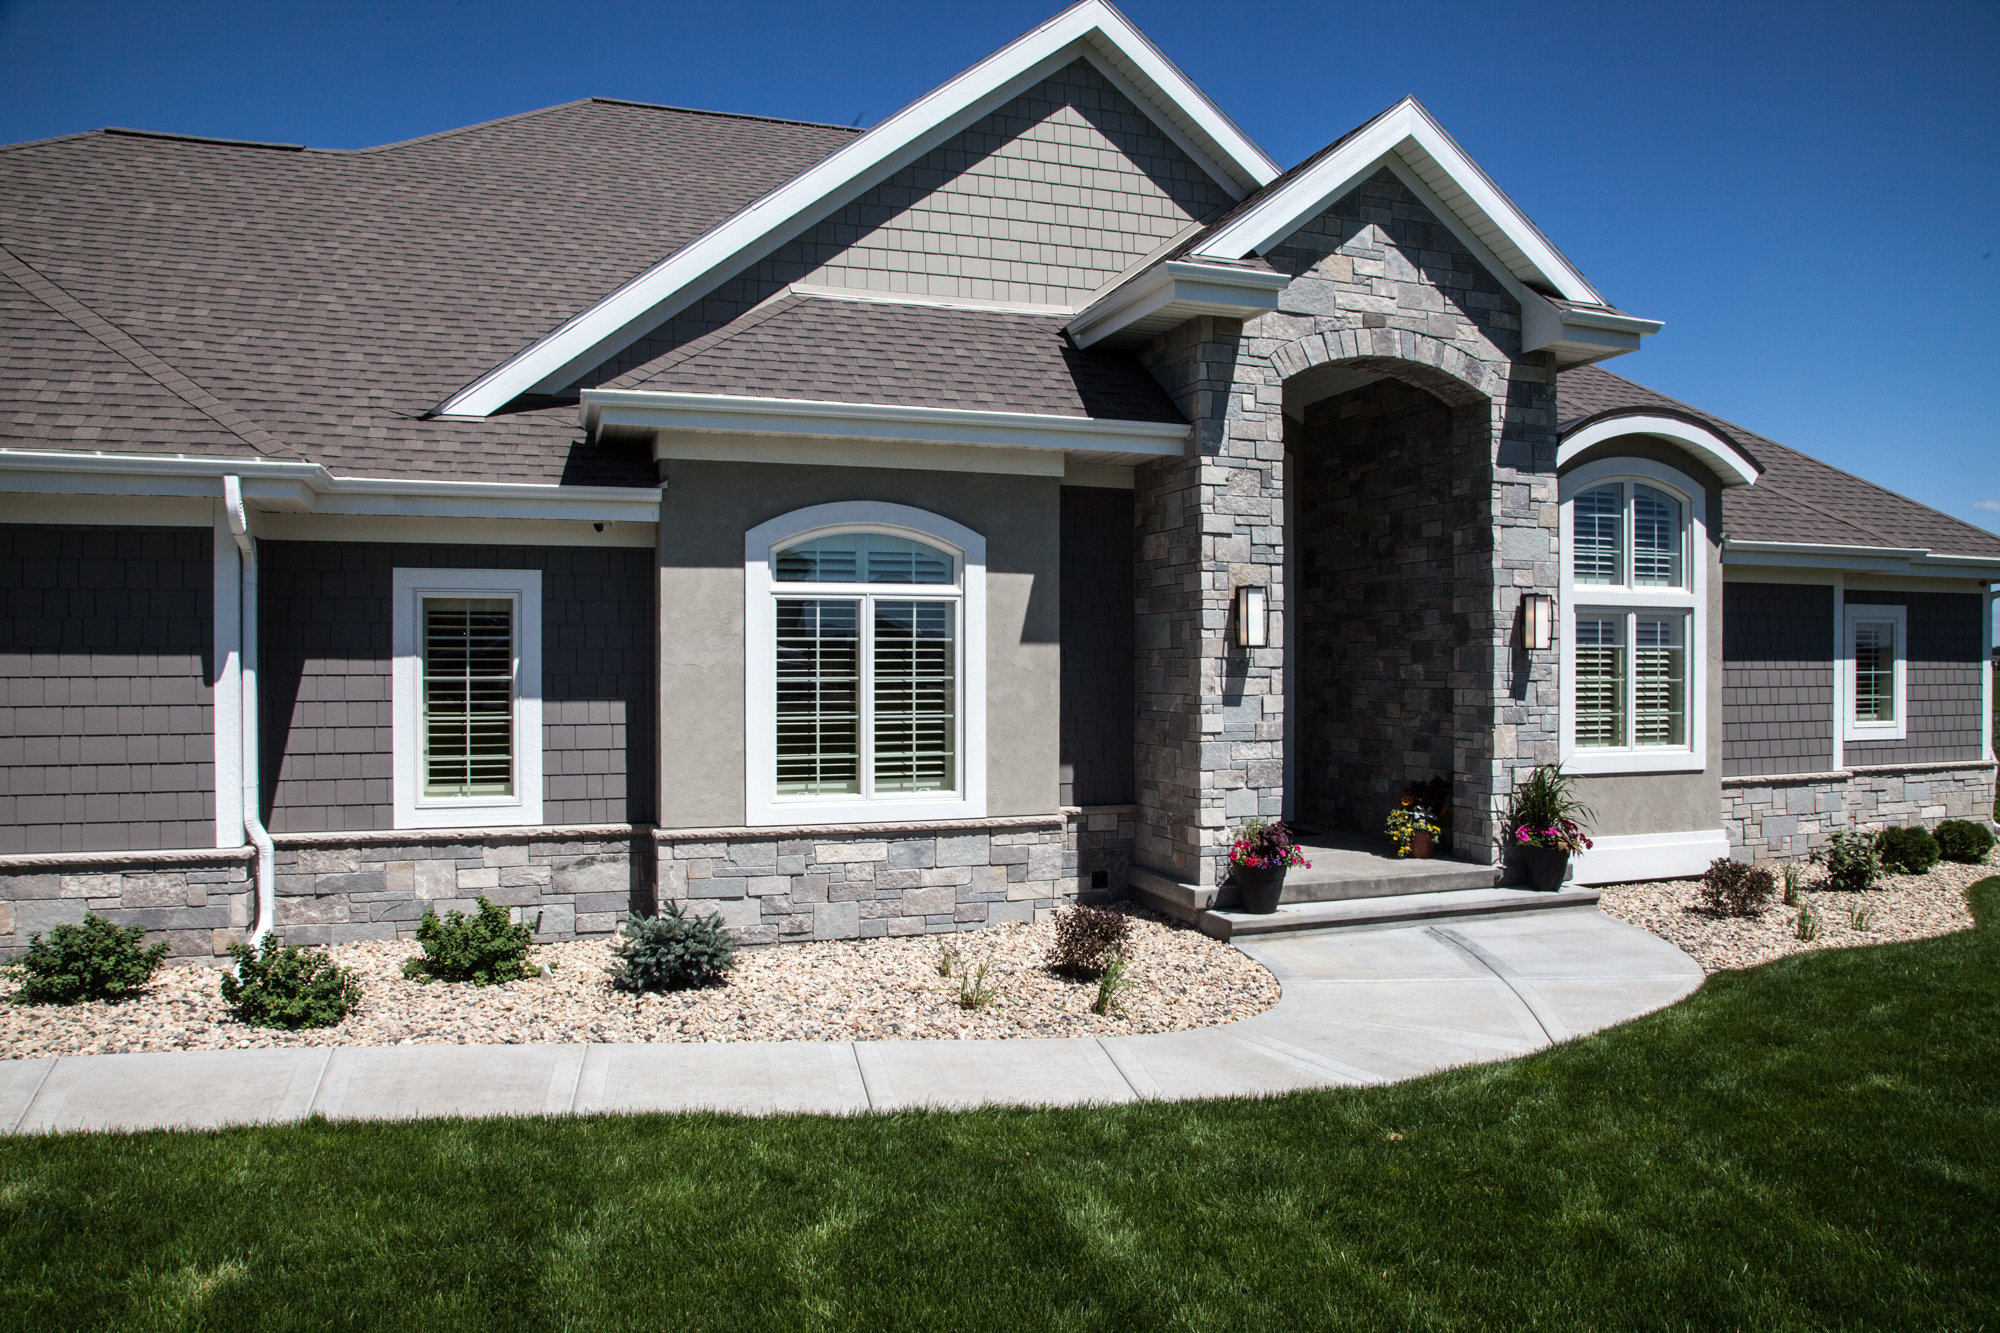 2016 Parade of Homes   Exterior Renovations Madison Remodeling, Roofing, Siding and Windows